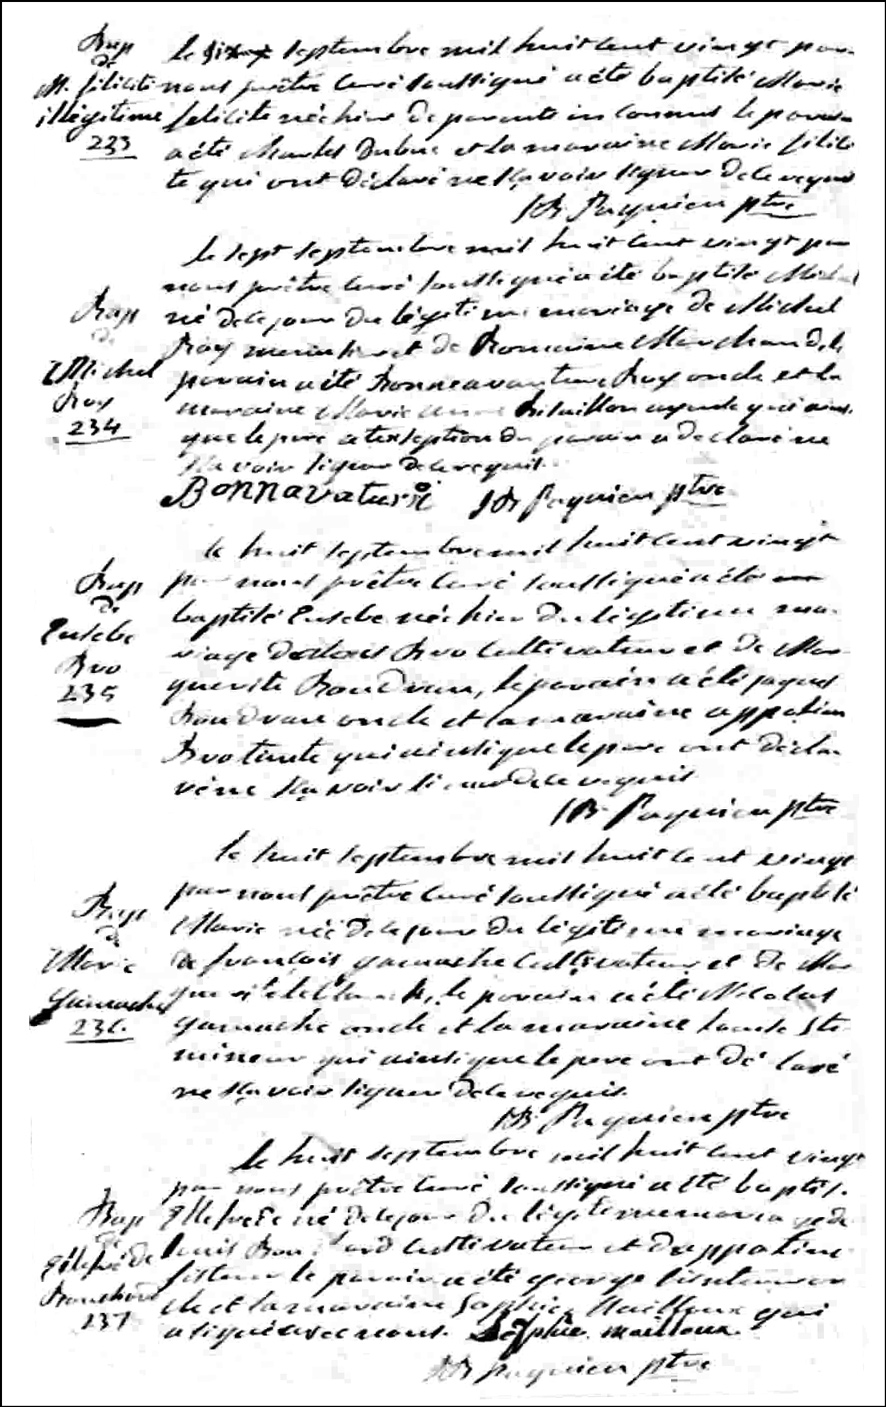 Birth and Baptismal Record of Marie Gamache - 1920